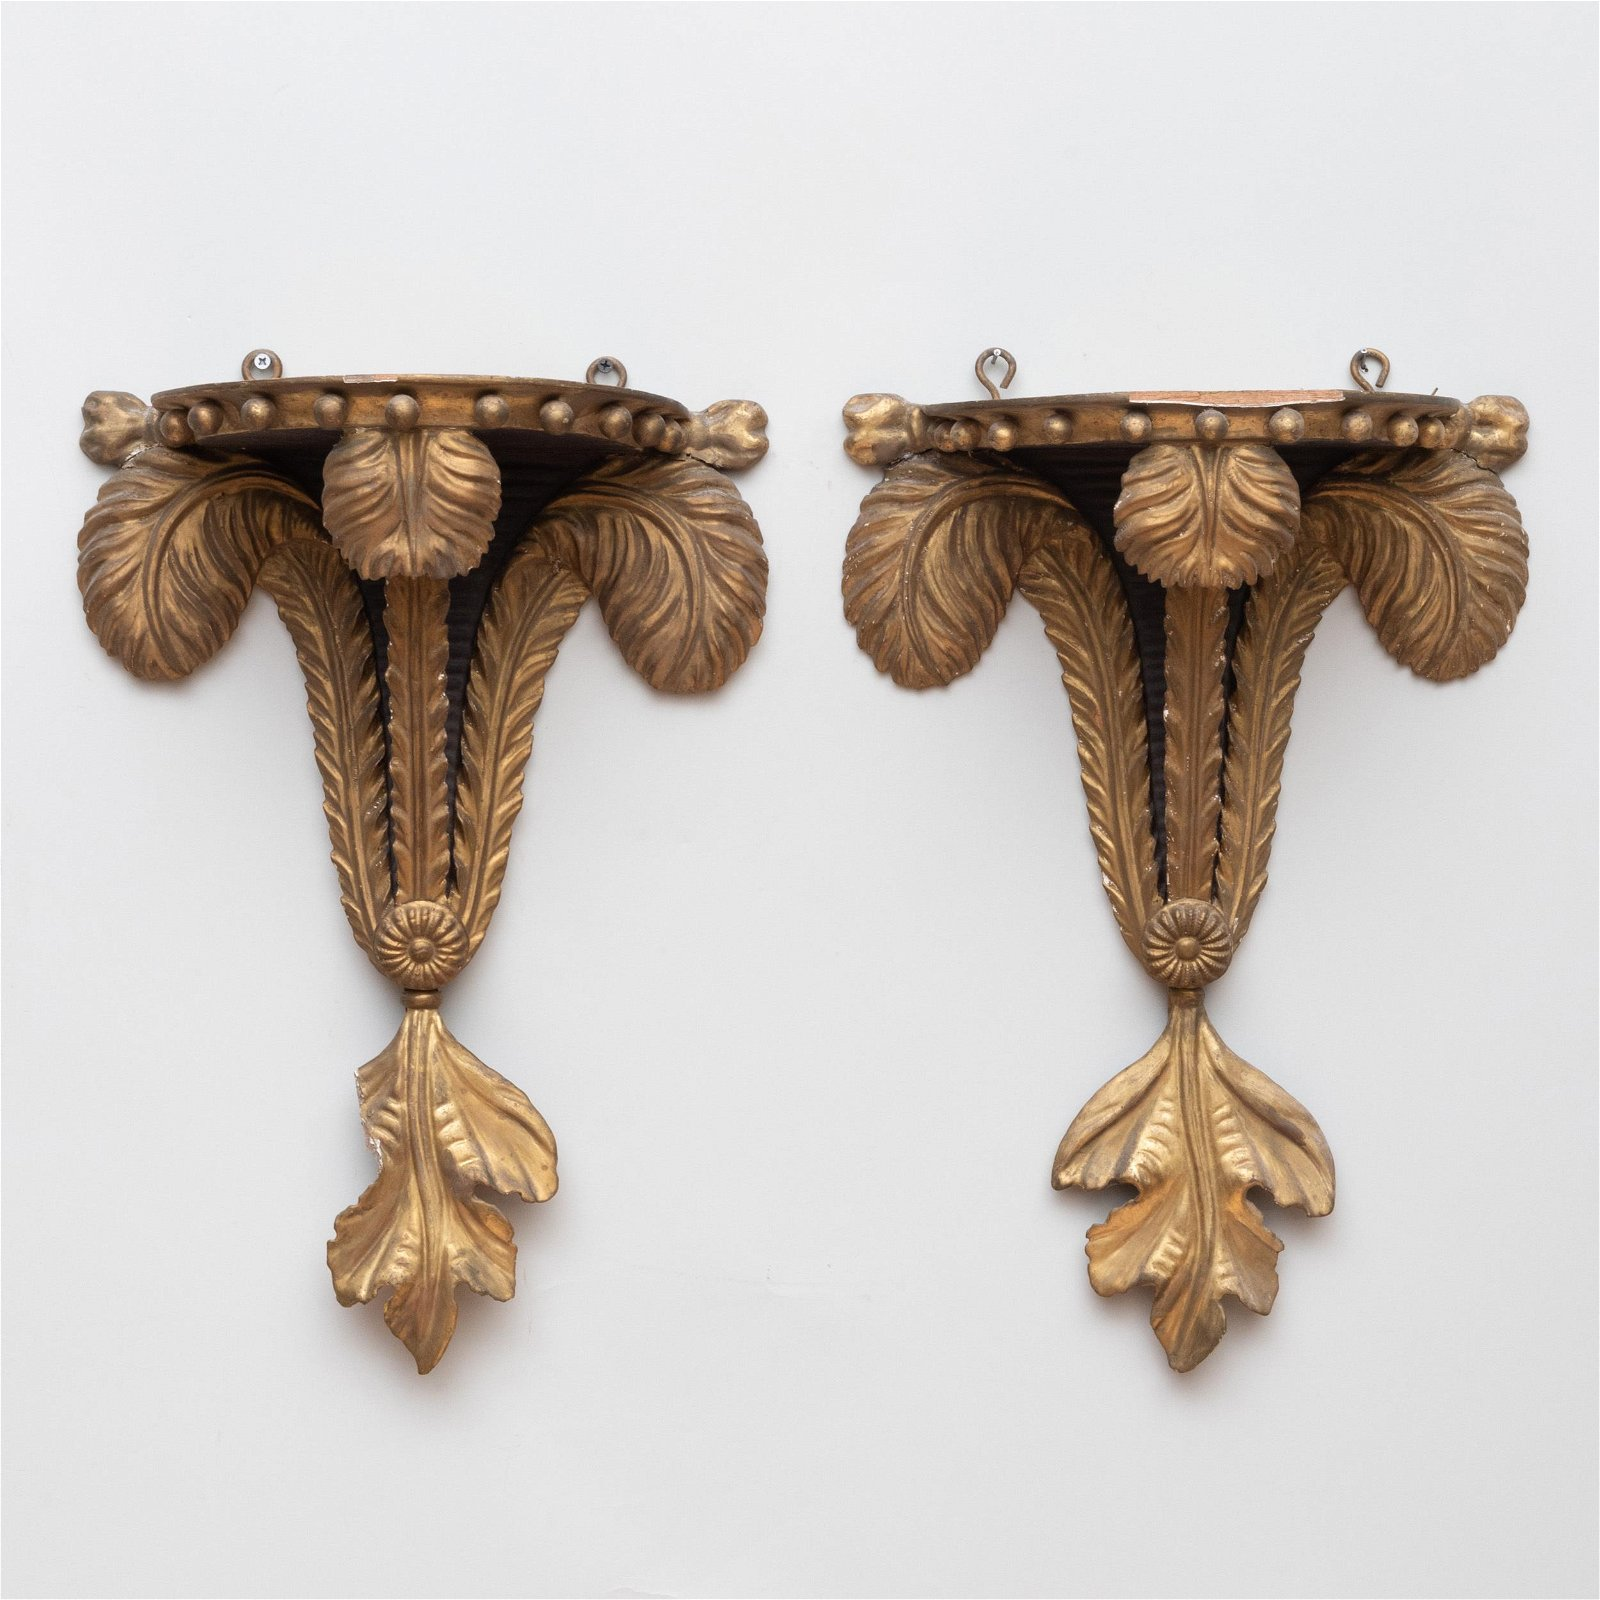 Pair of Late George III Style Giltwood Prince of Wales